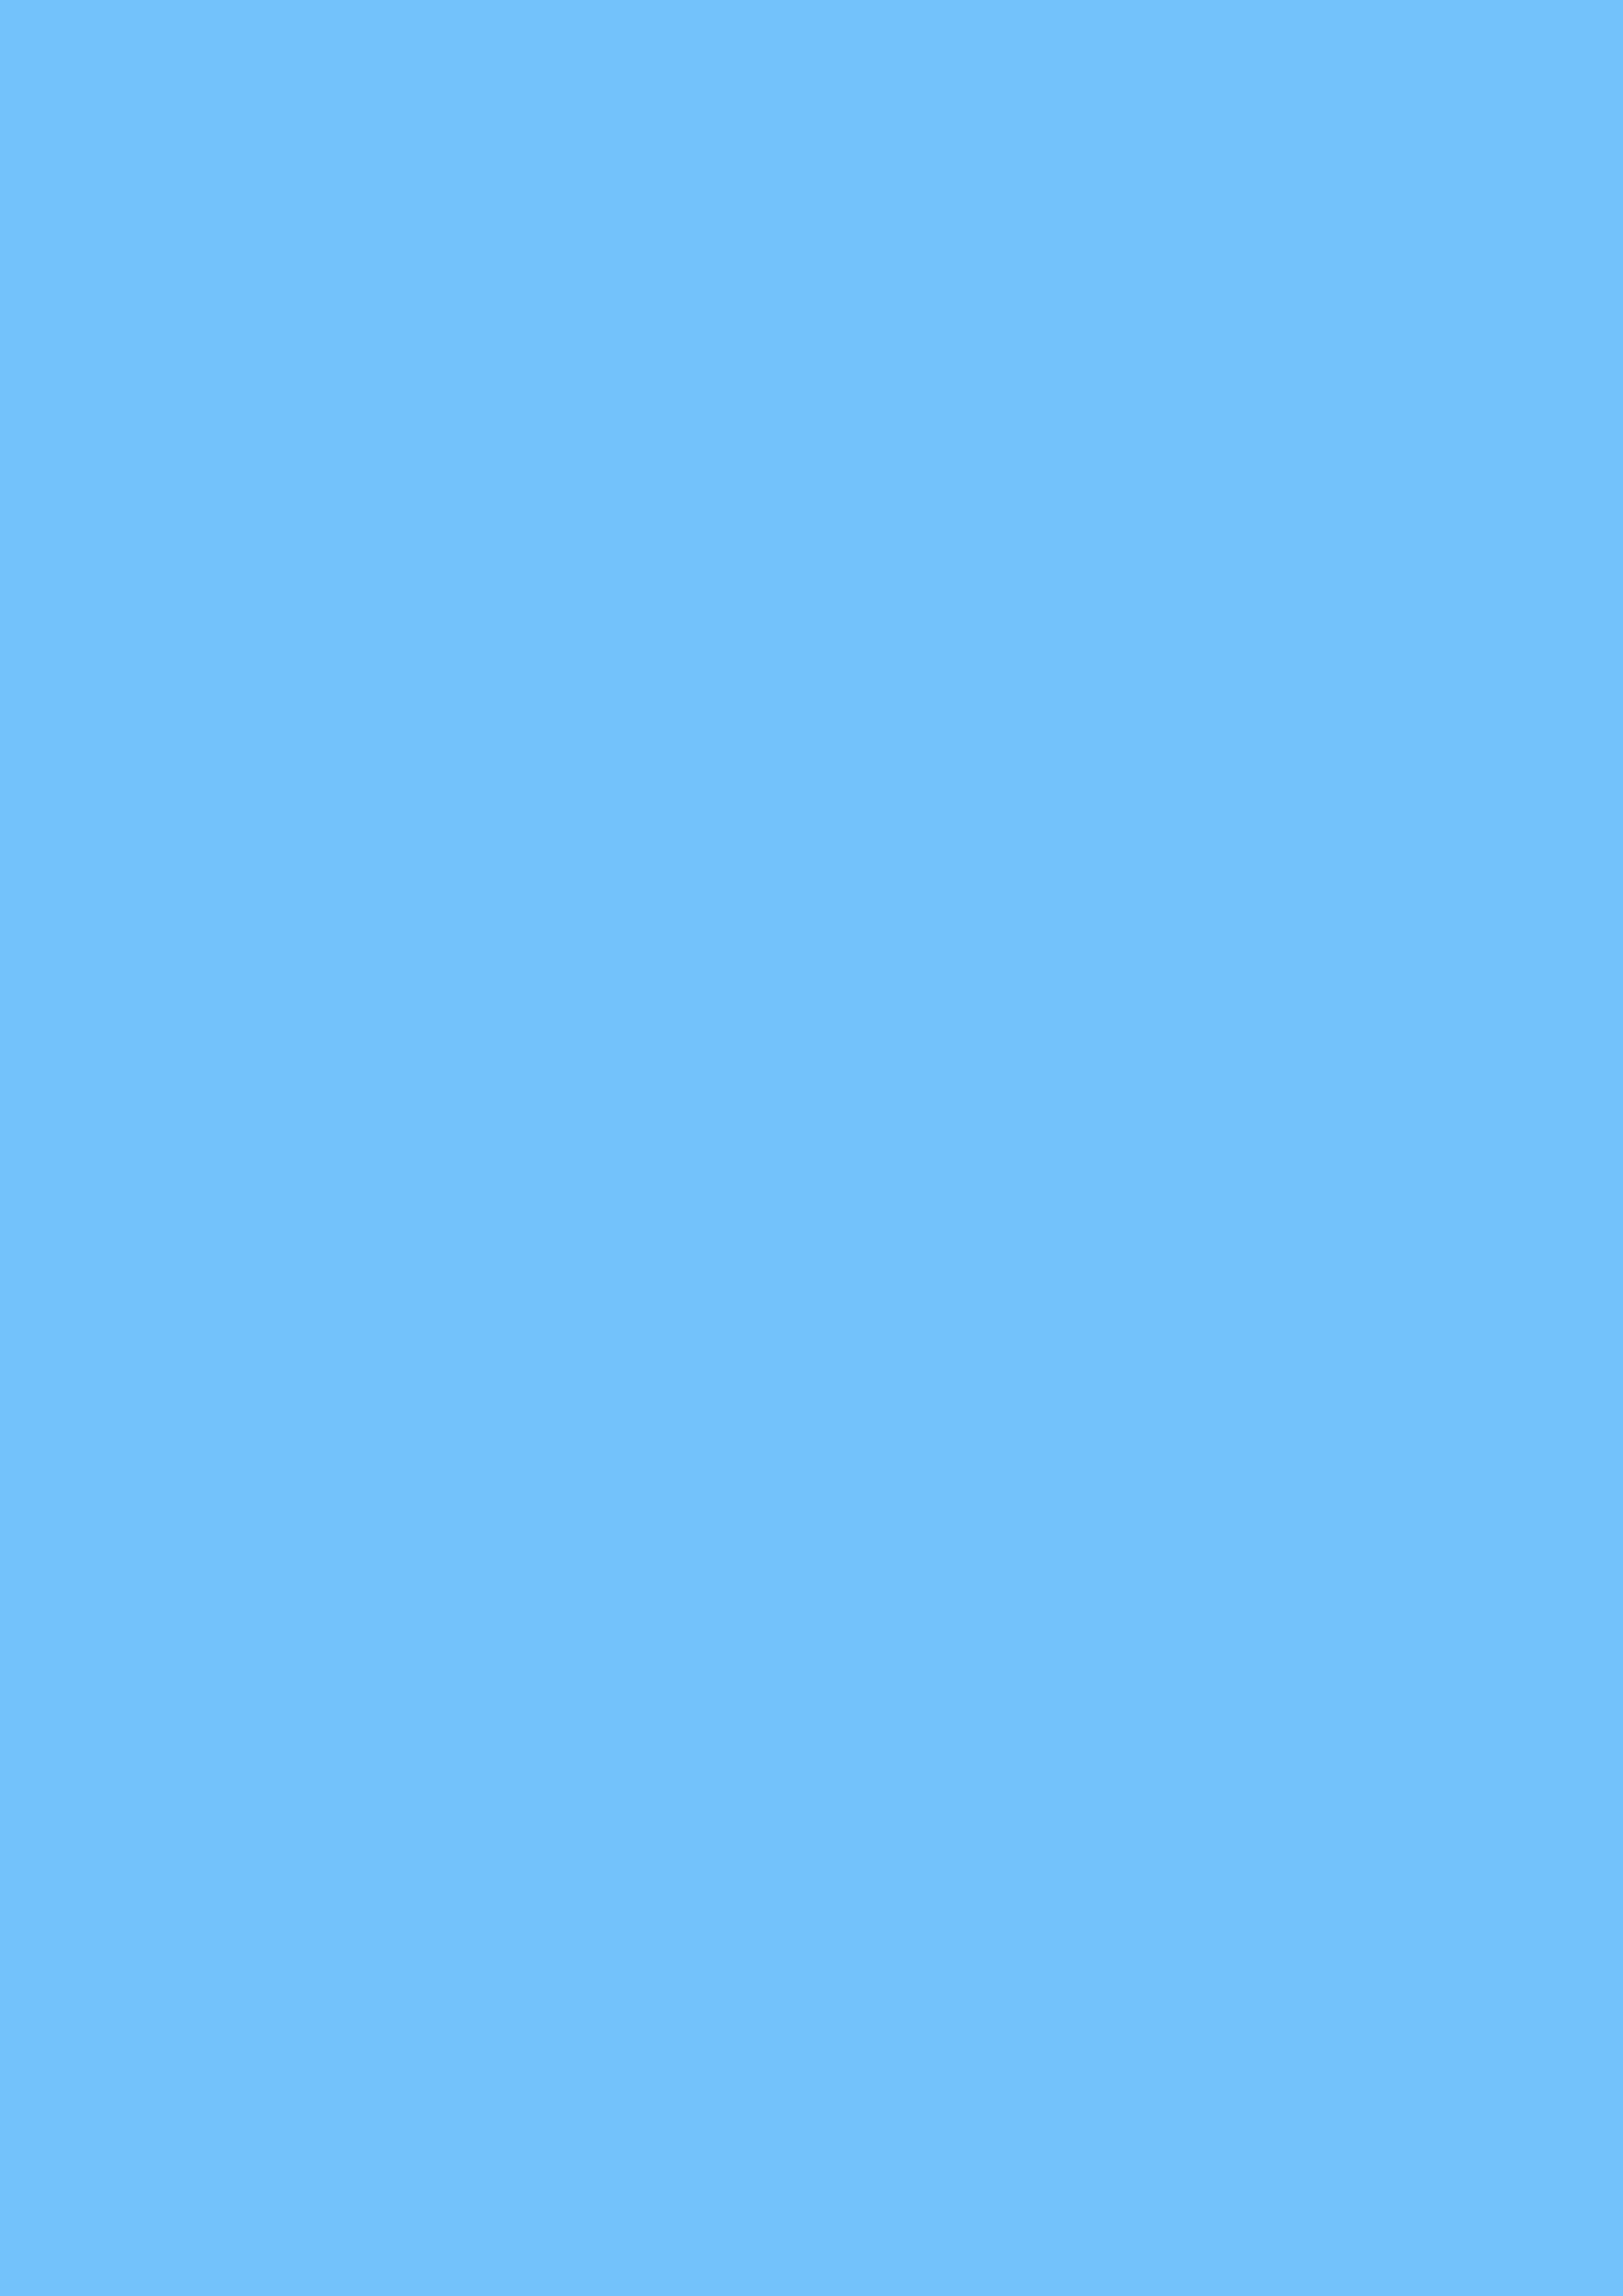 2480x3508 Maya Blue Solid Color Background